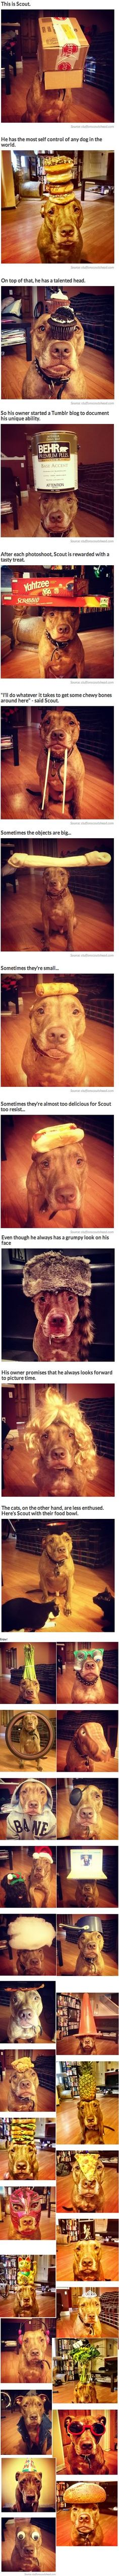 This Dog Can Balance Anything On His Head. You'll Burst Out Laughing Till You Cry At What His Owner Has Tried… LOL! This made me laugh so hard Love My Dog, Puppy Love, Funny Dogs, Cute Dogs, Funny Animals, Cute Animals, Funny Humor, Funniest Animals, Wild Animals